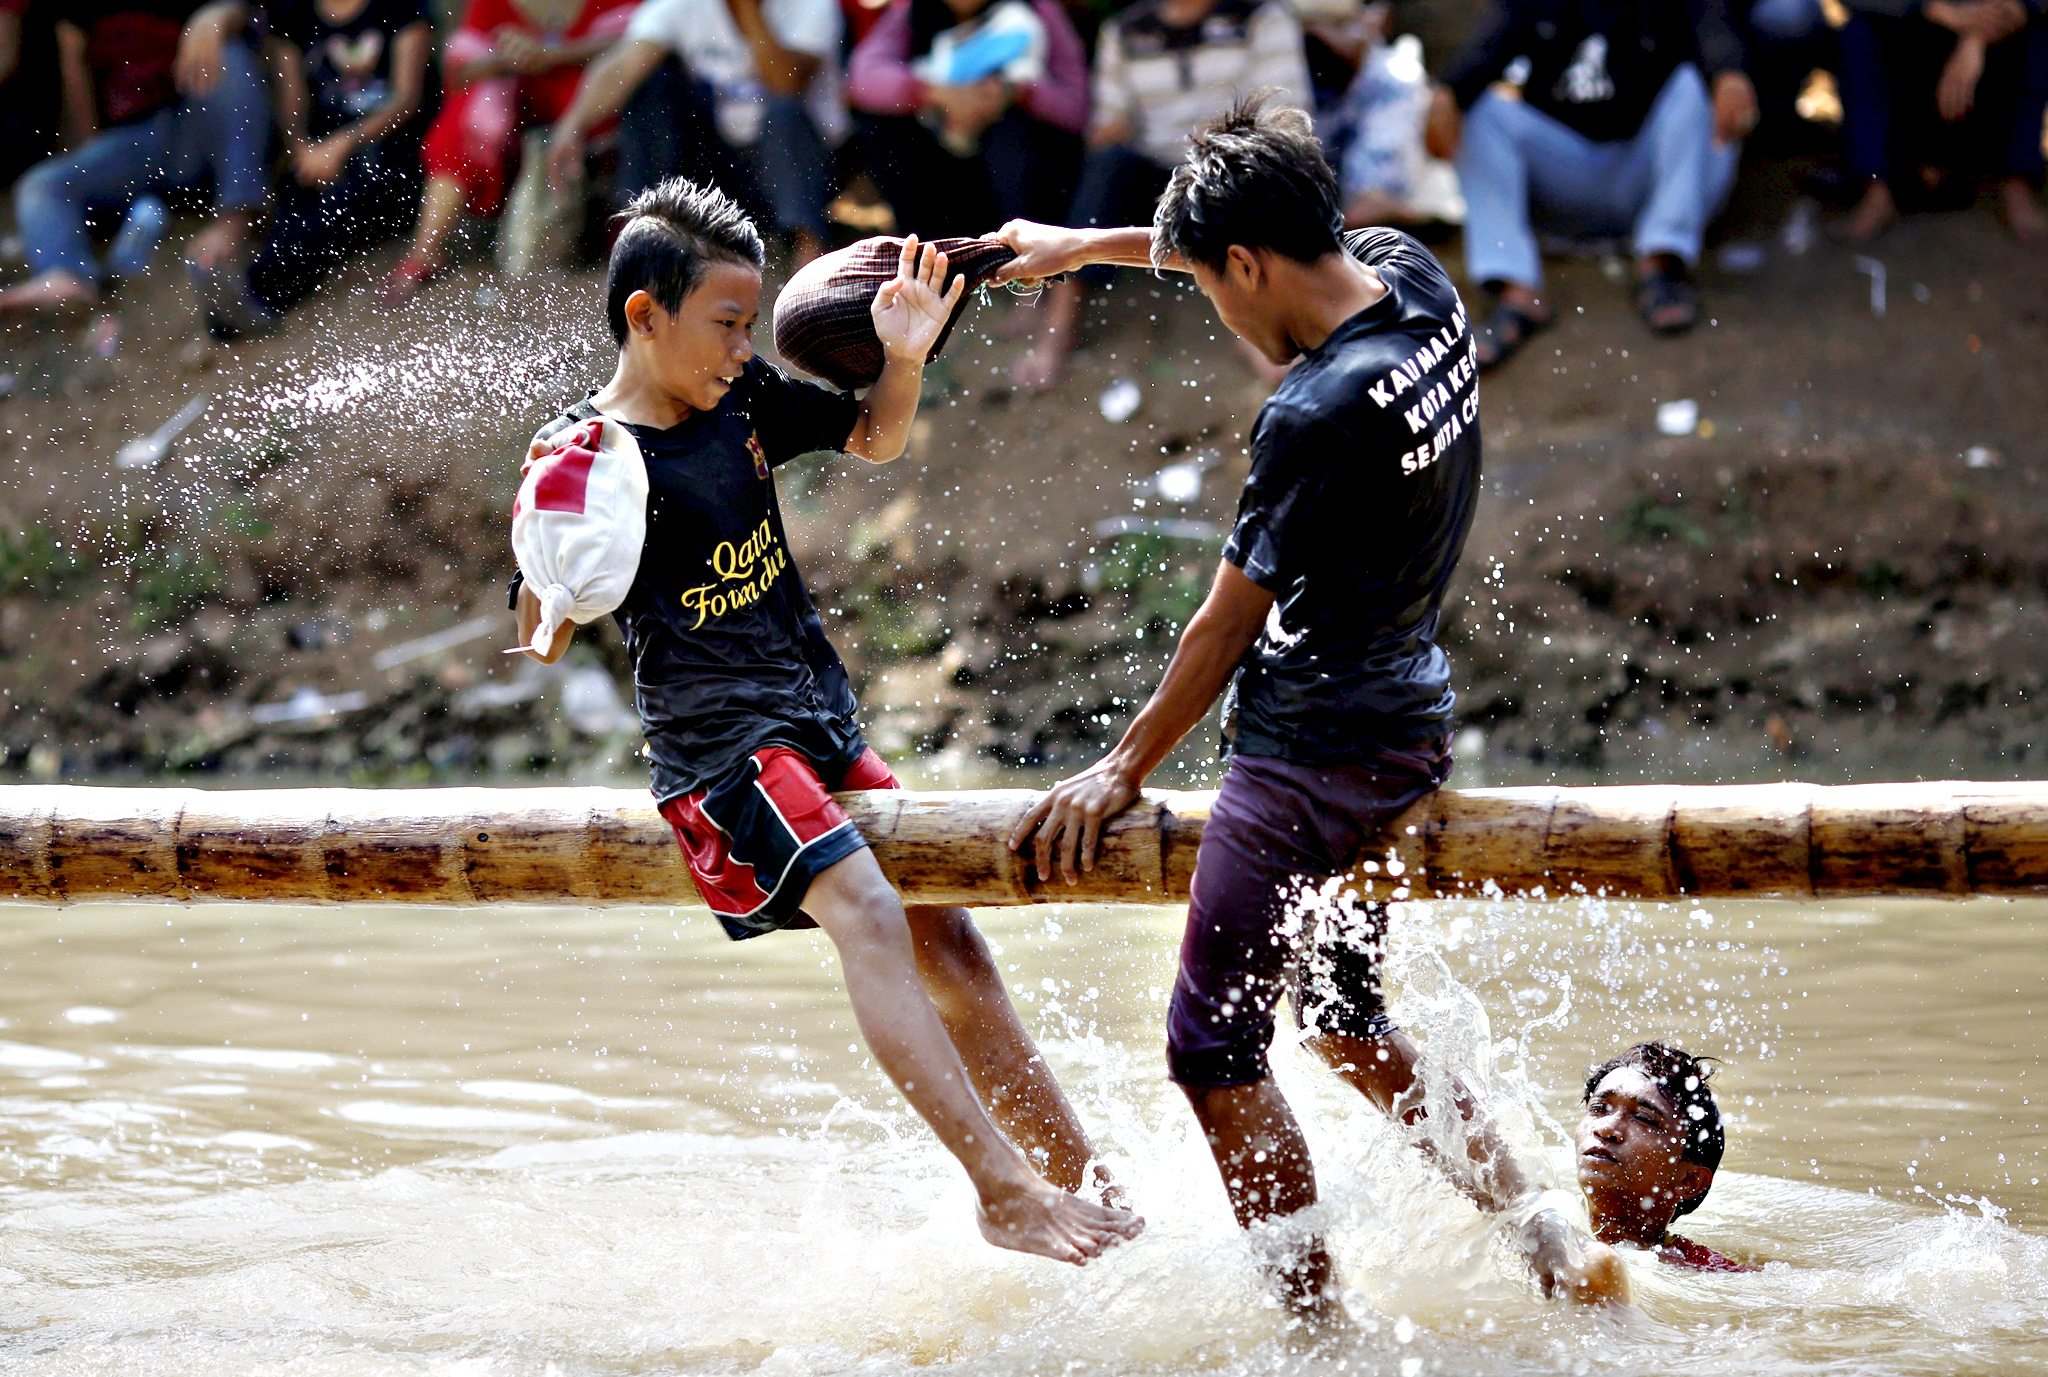 "Boys play a pillow-fighting game called ""gebuk kasur"" during celebrations for Indonesia's 70th Independence Day along Kalimalang river in Jakarta, Indonesia...Boys play a pillow-fighting game called ""gebuk kasur"" during celebrations for Indonesia's 70th Independence Day along Kalimalang river in Jakarta, Indonesia, August 17, 2015"